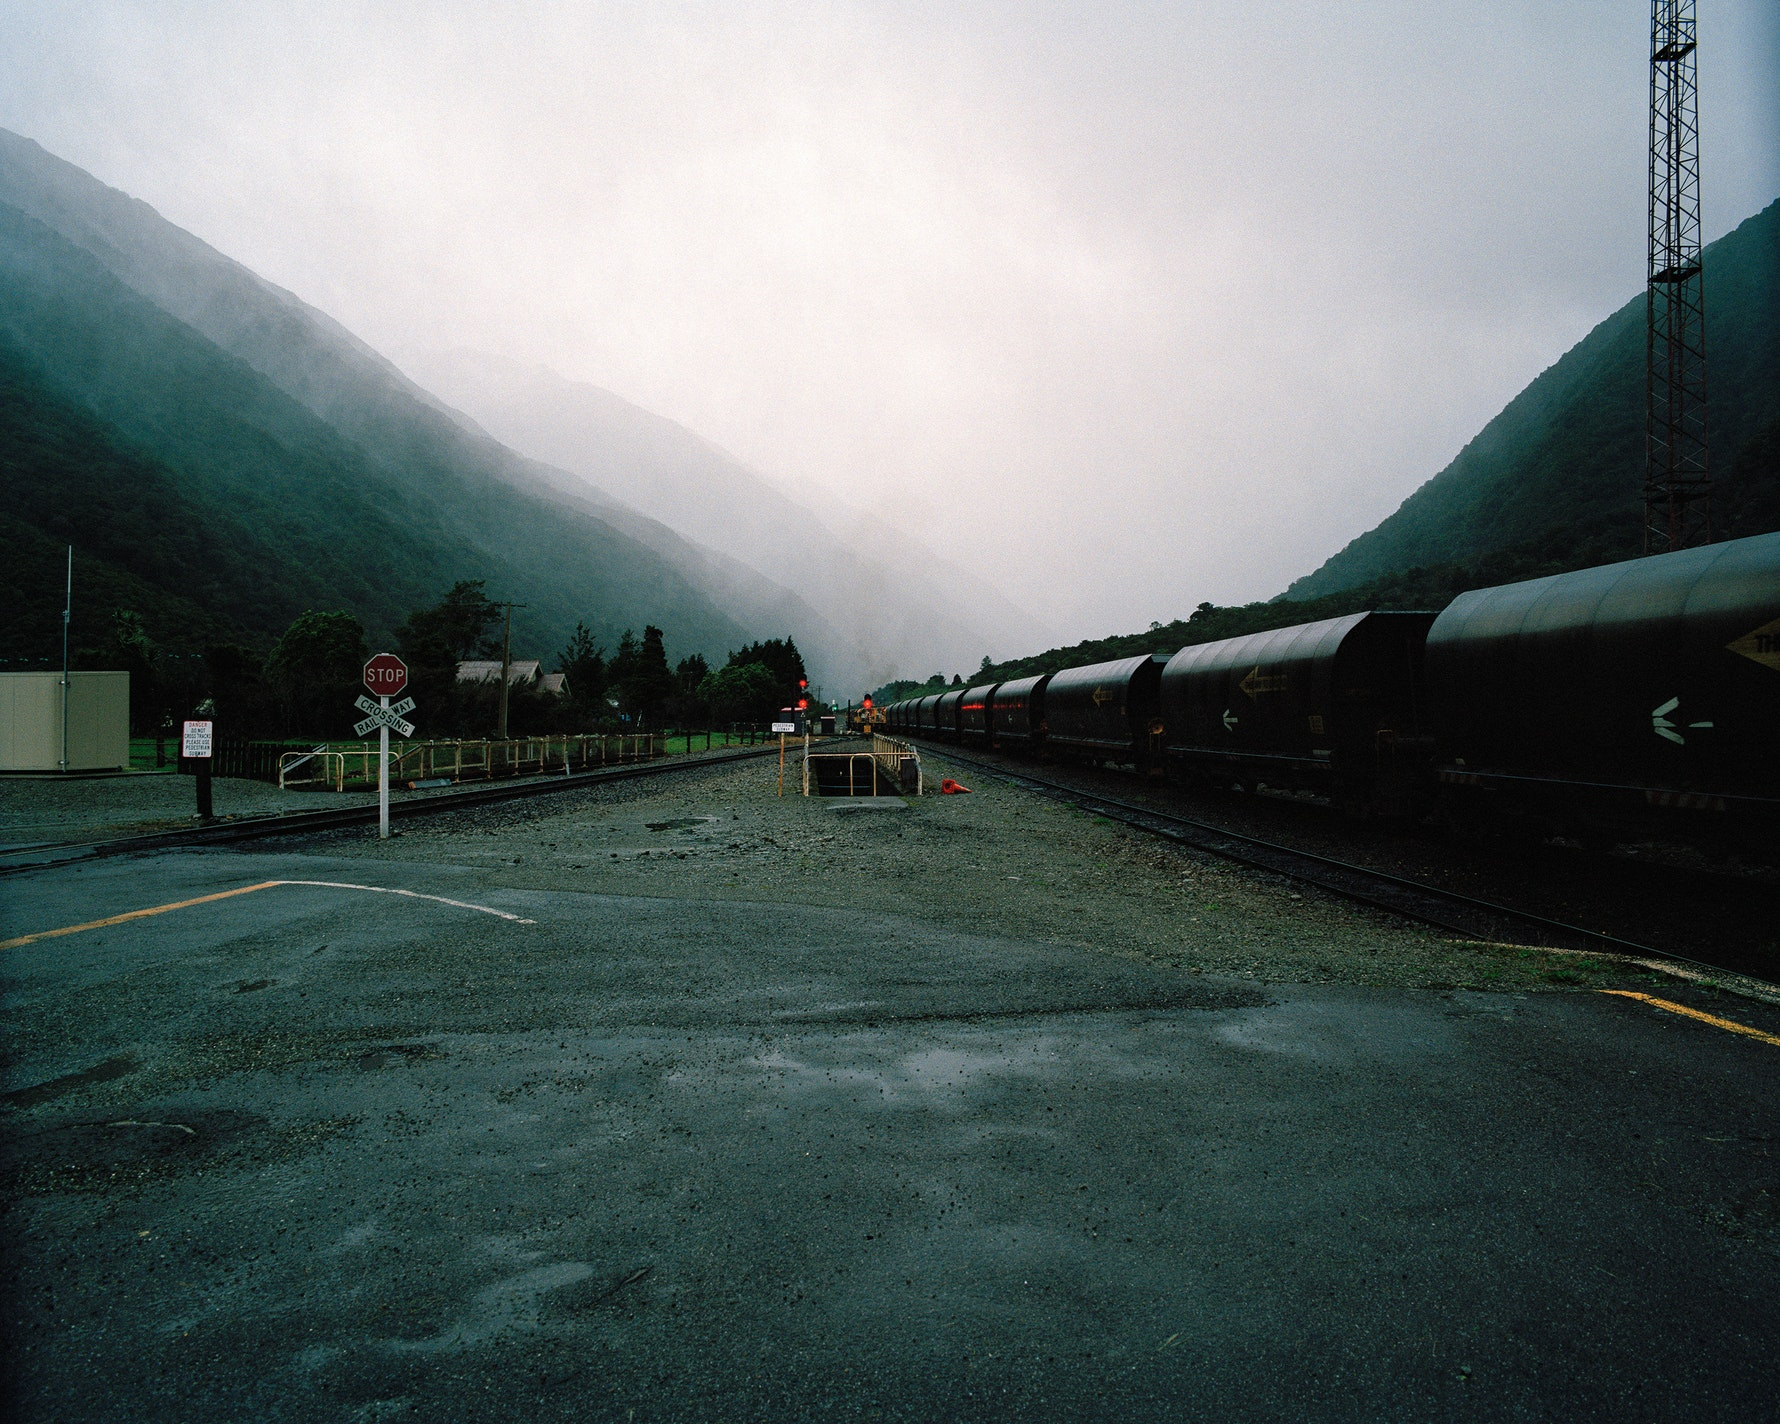 Coal train, Otira, 2015